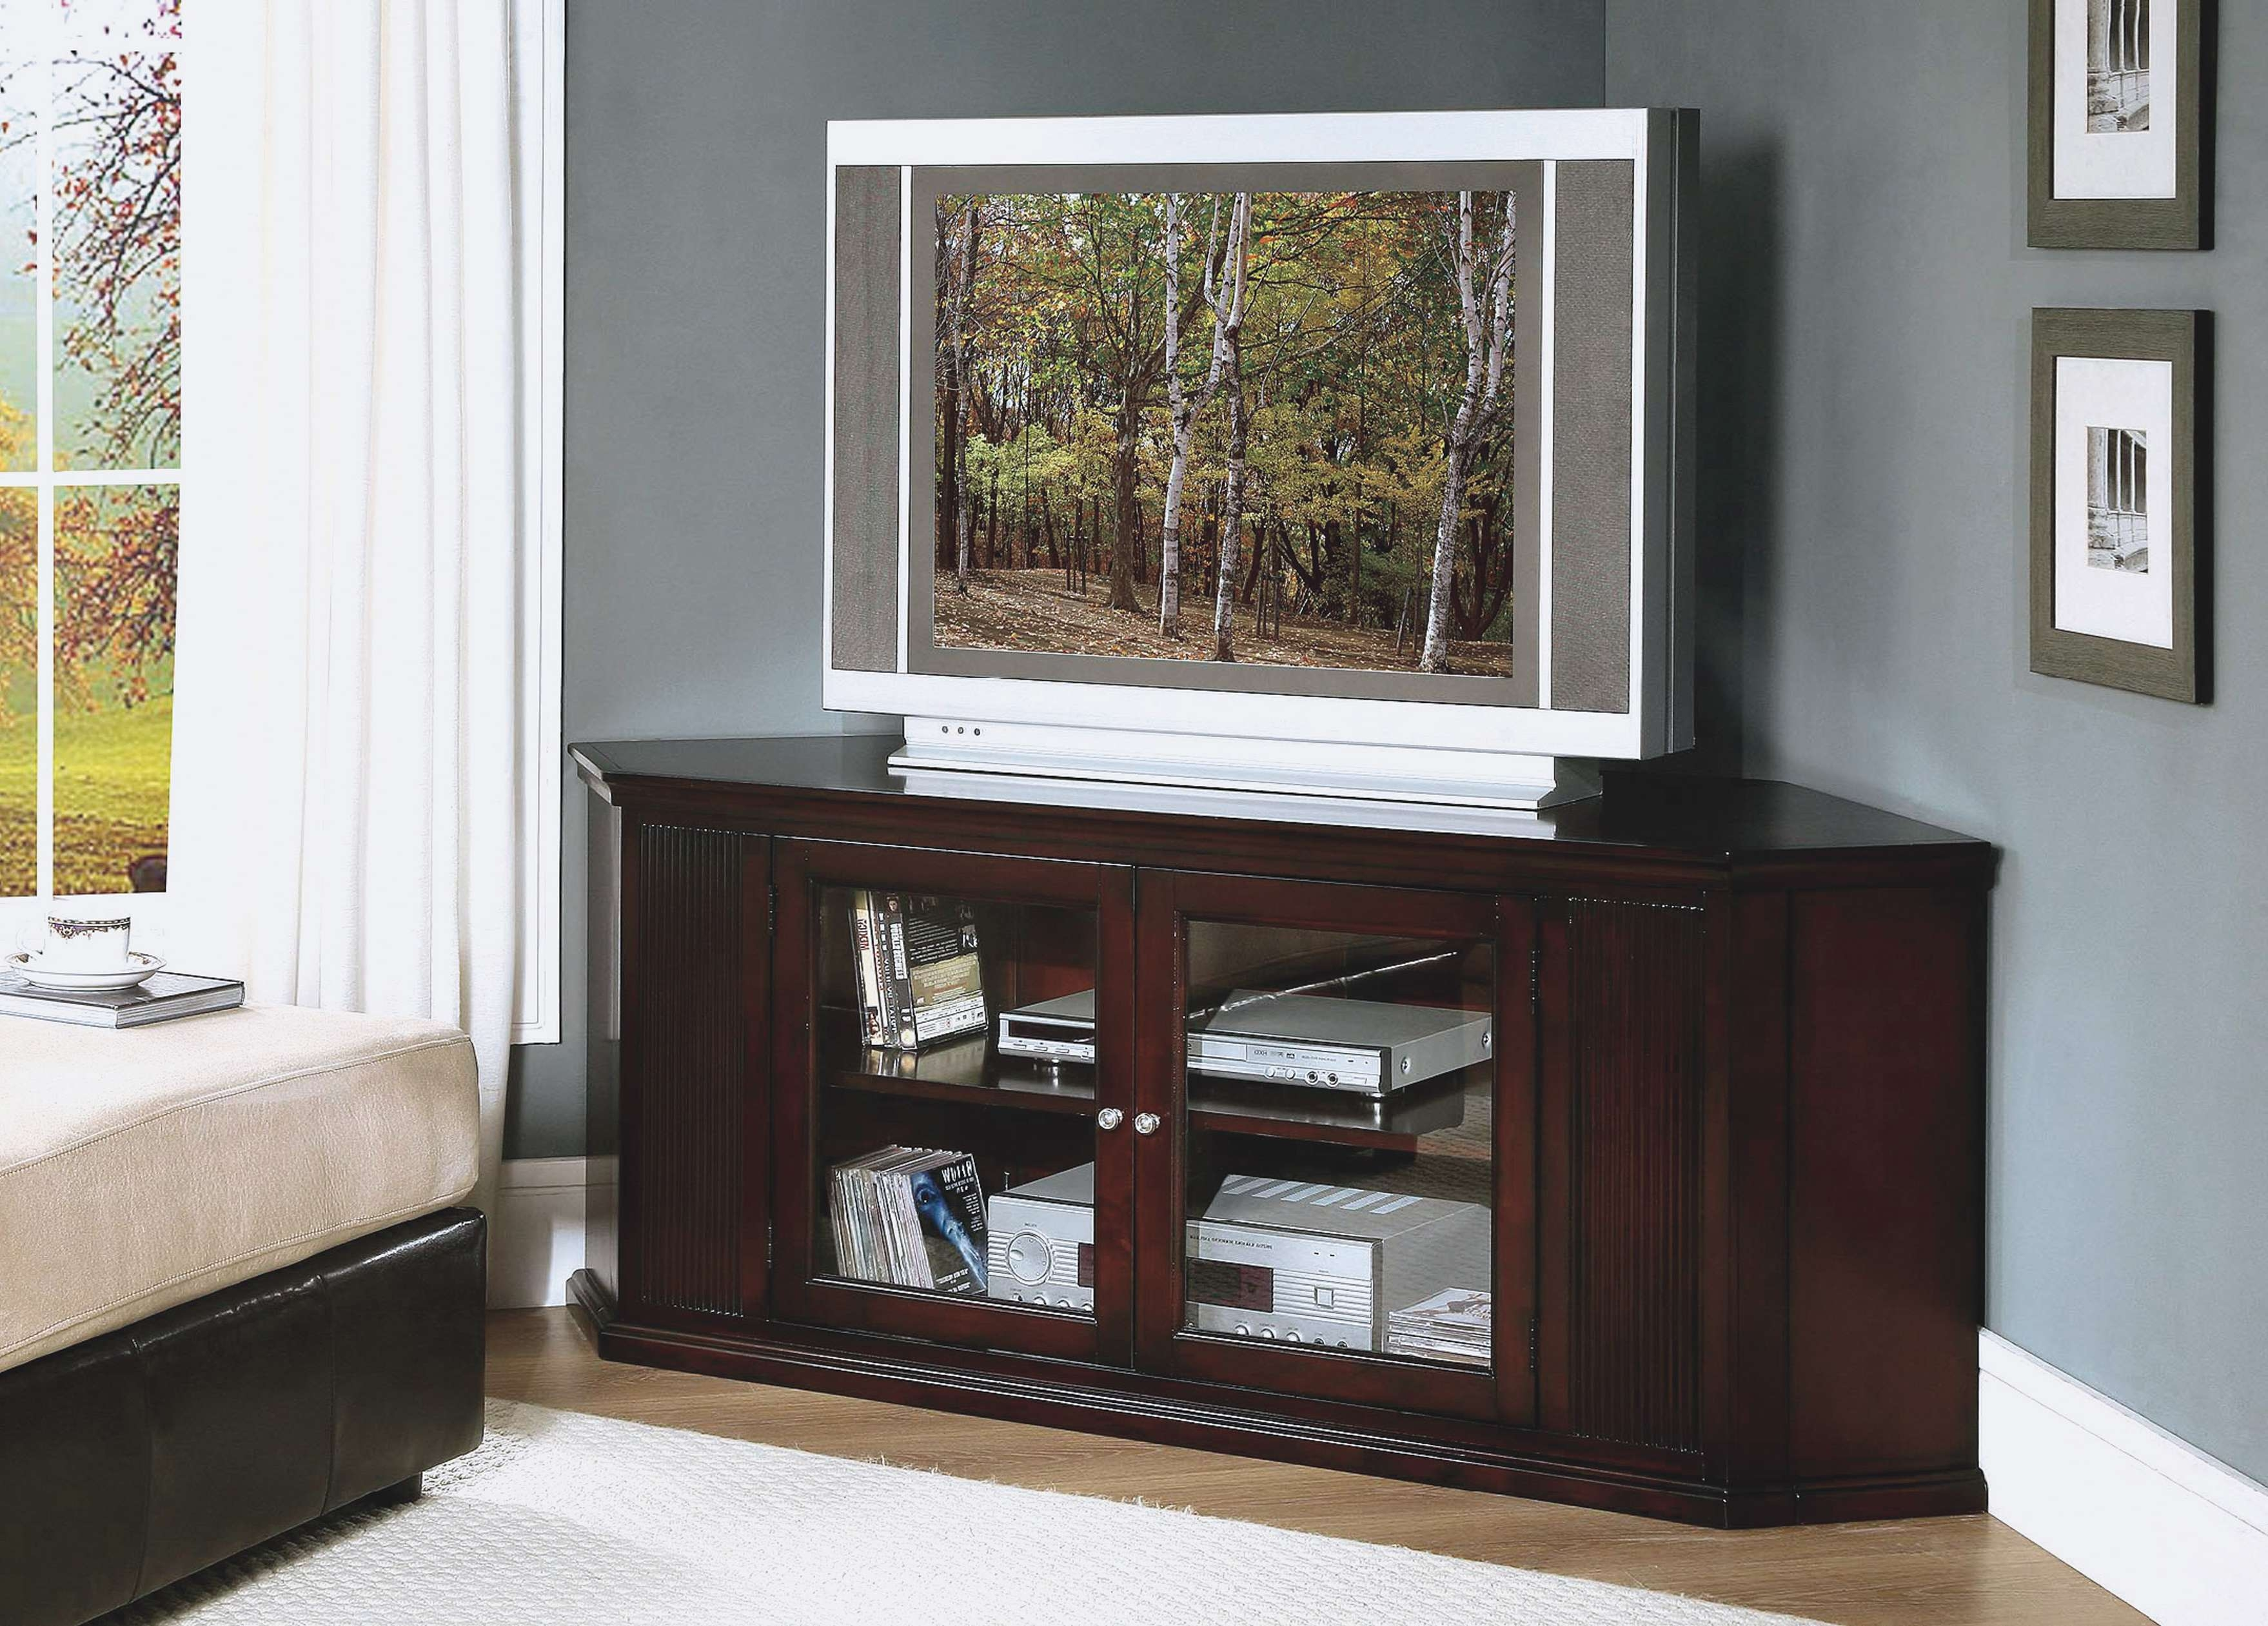 Dark Brown Oak Wood Corner Tv Stand With Glass Doors Of Dazzling Inside Large Corner Tv Stands (View 6 of 15)